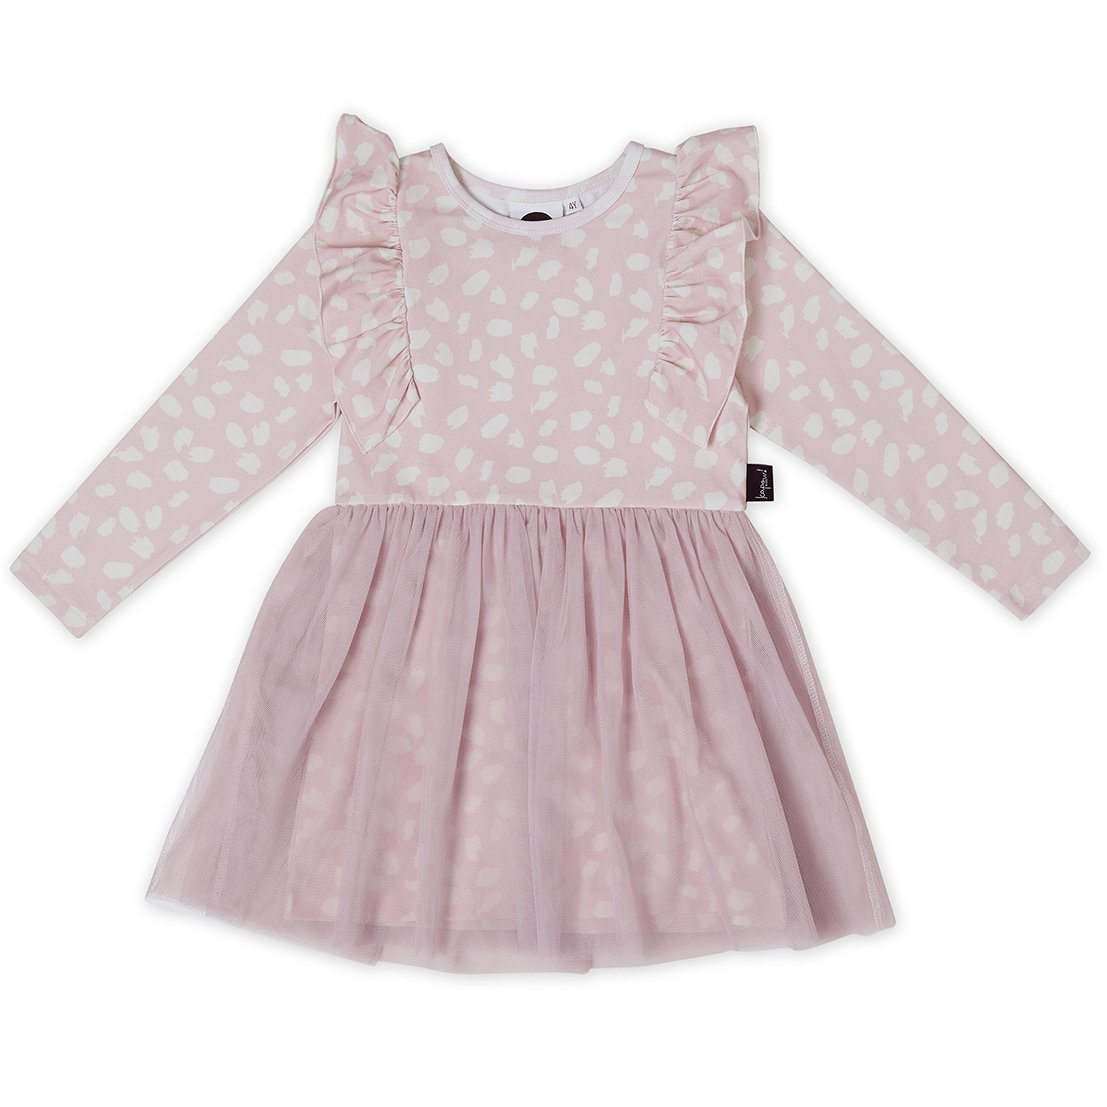 Marshmallow Tutu Dress